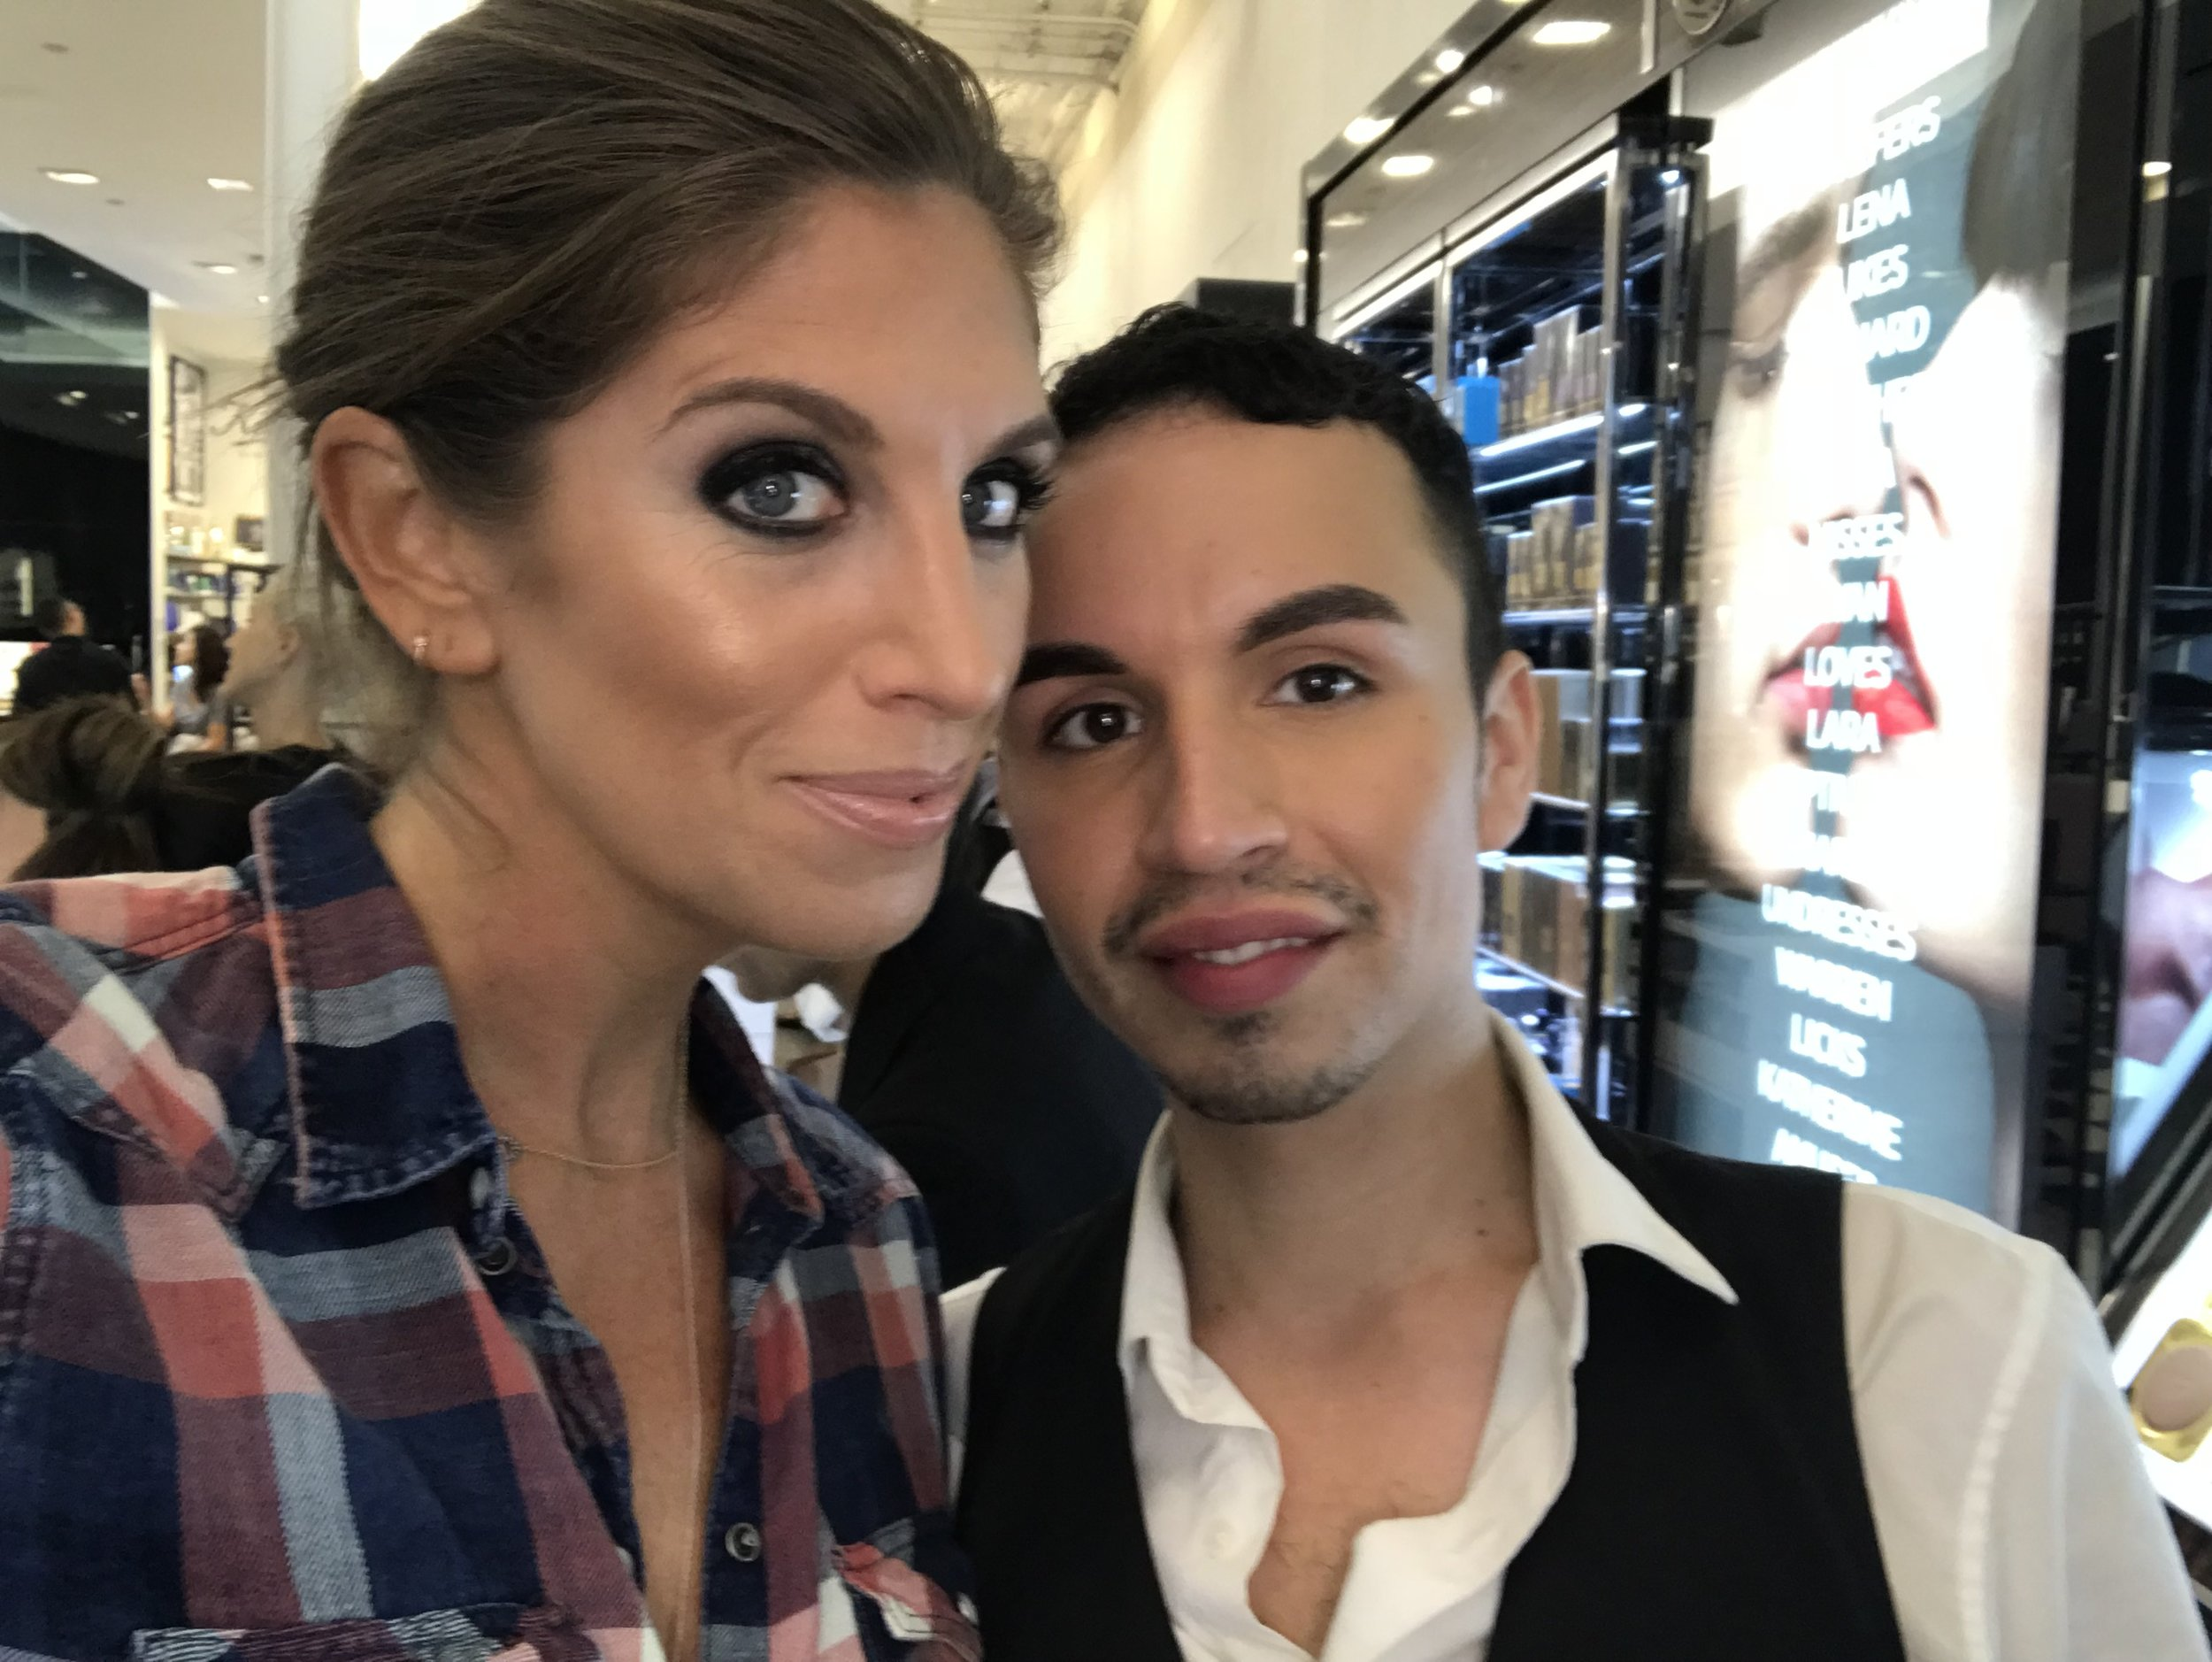 This is Juan. Find him, command him to do your makeup.